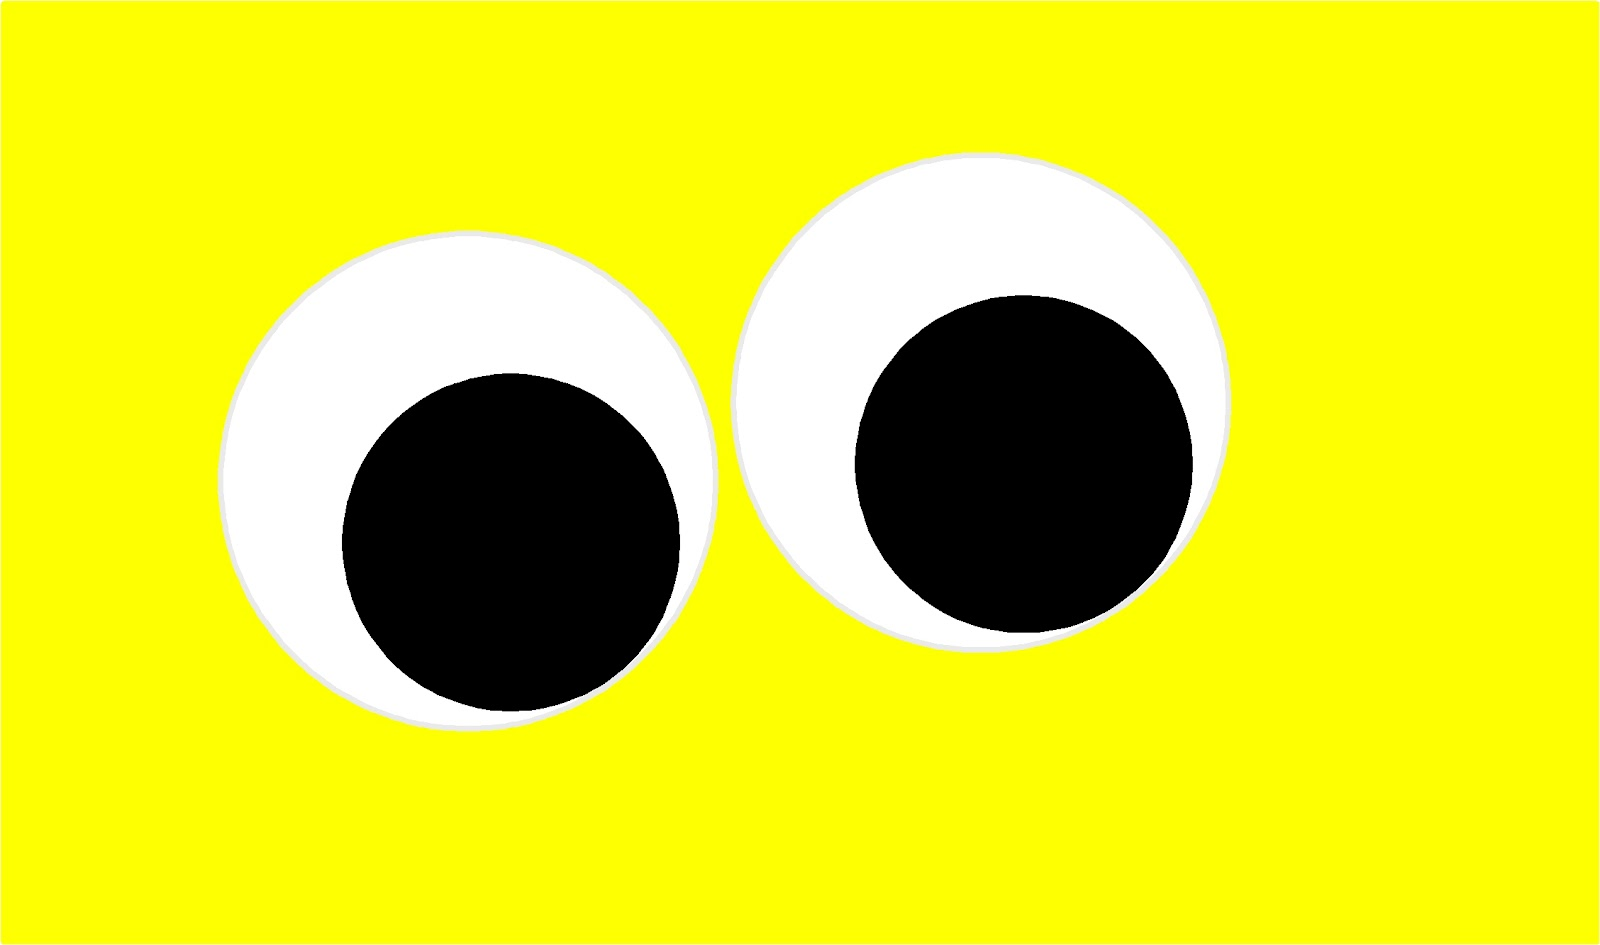 googly eyes clipart hd - photo #32